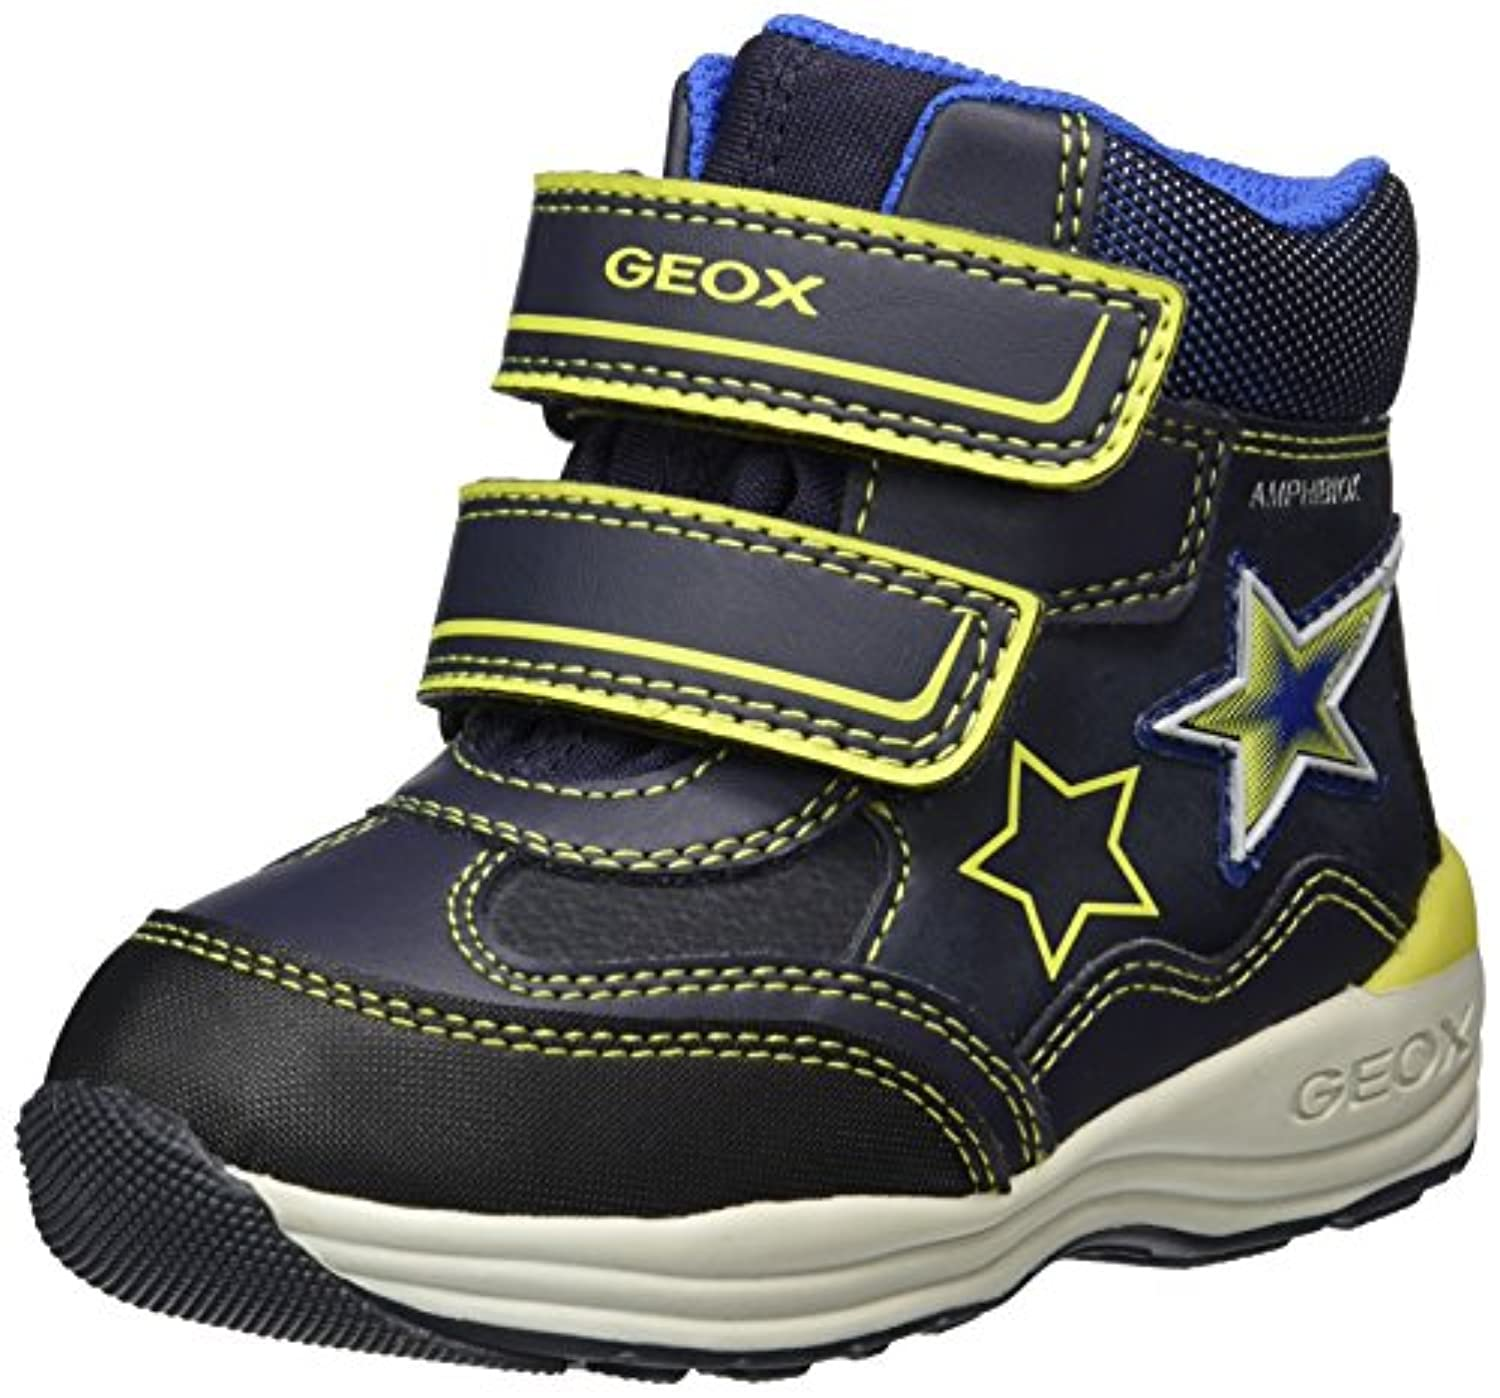 Geox ベビー?ボーイズ